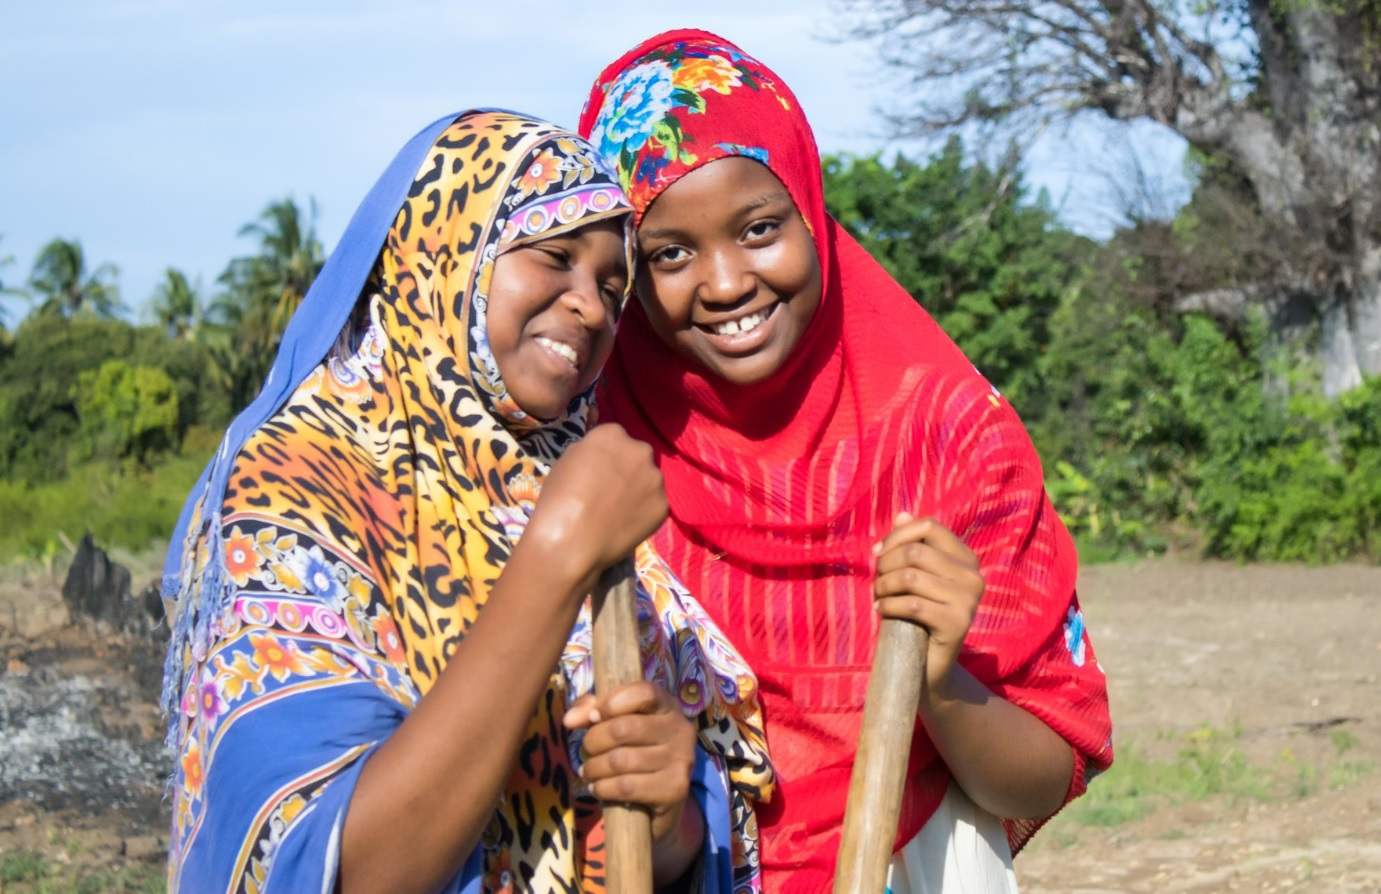 SDG 5: Tanzania battles for gender equality after victory against child marriage